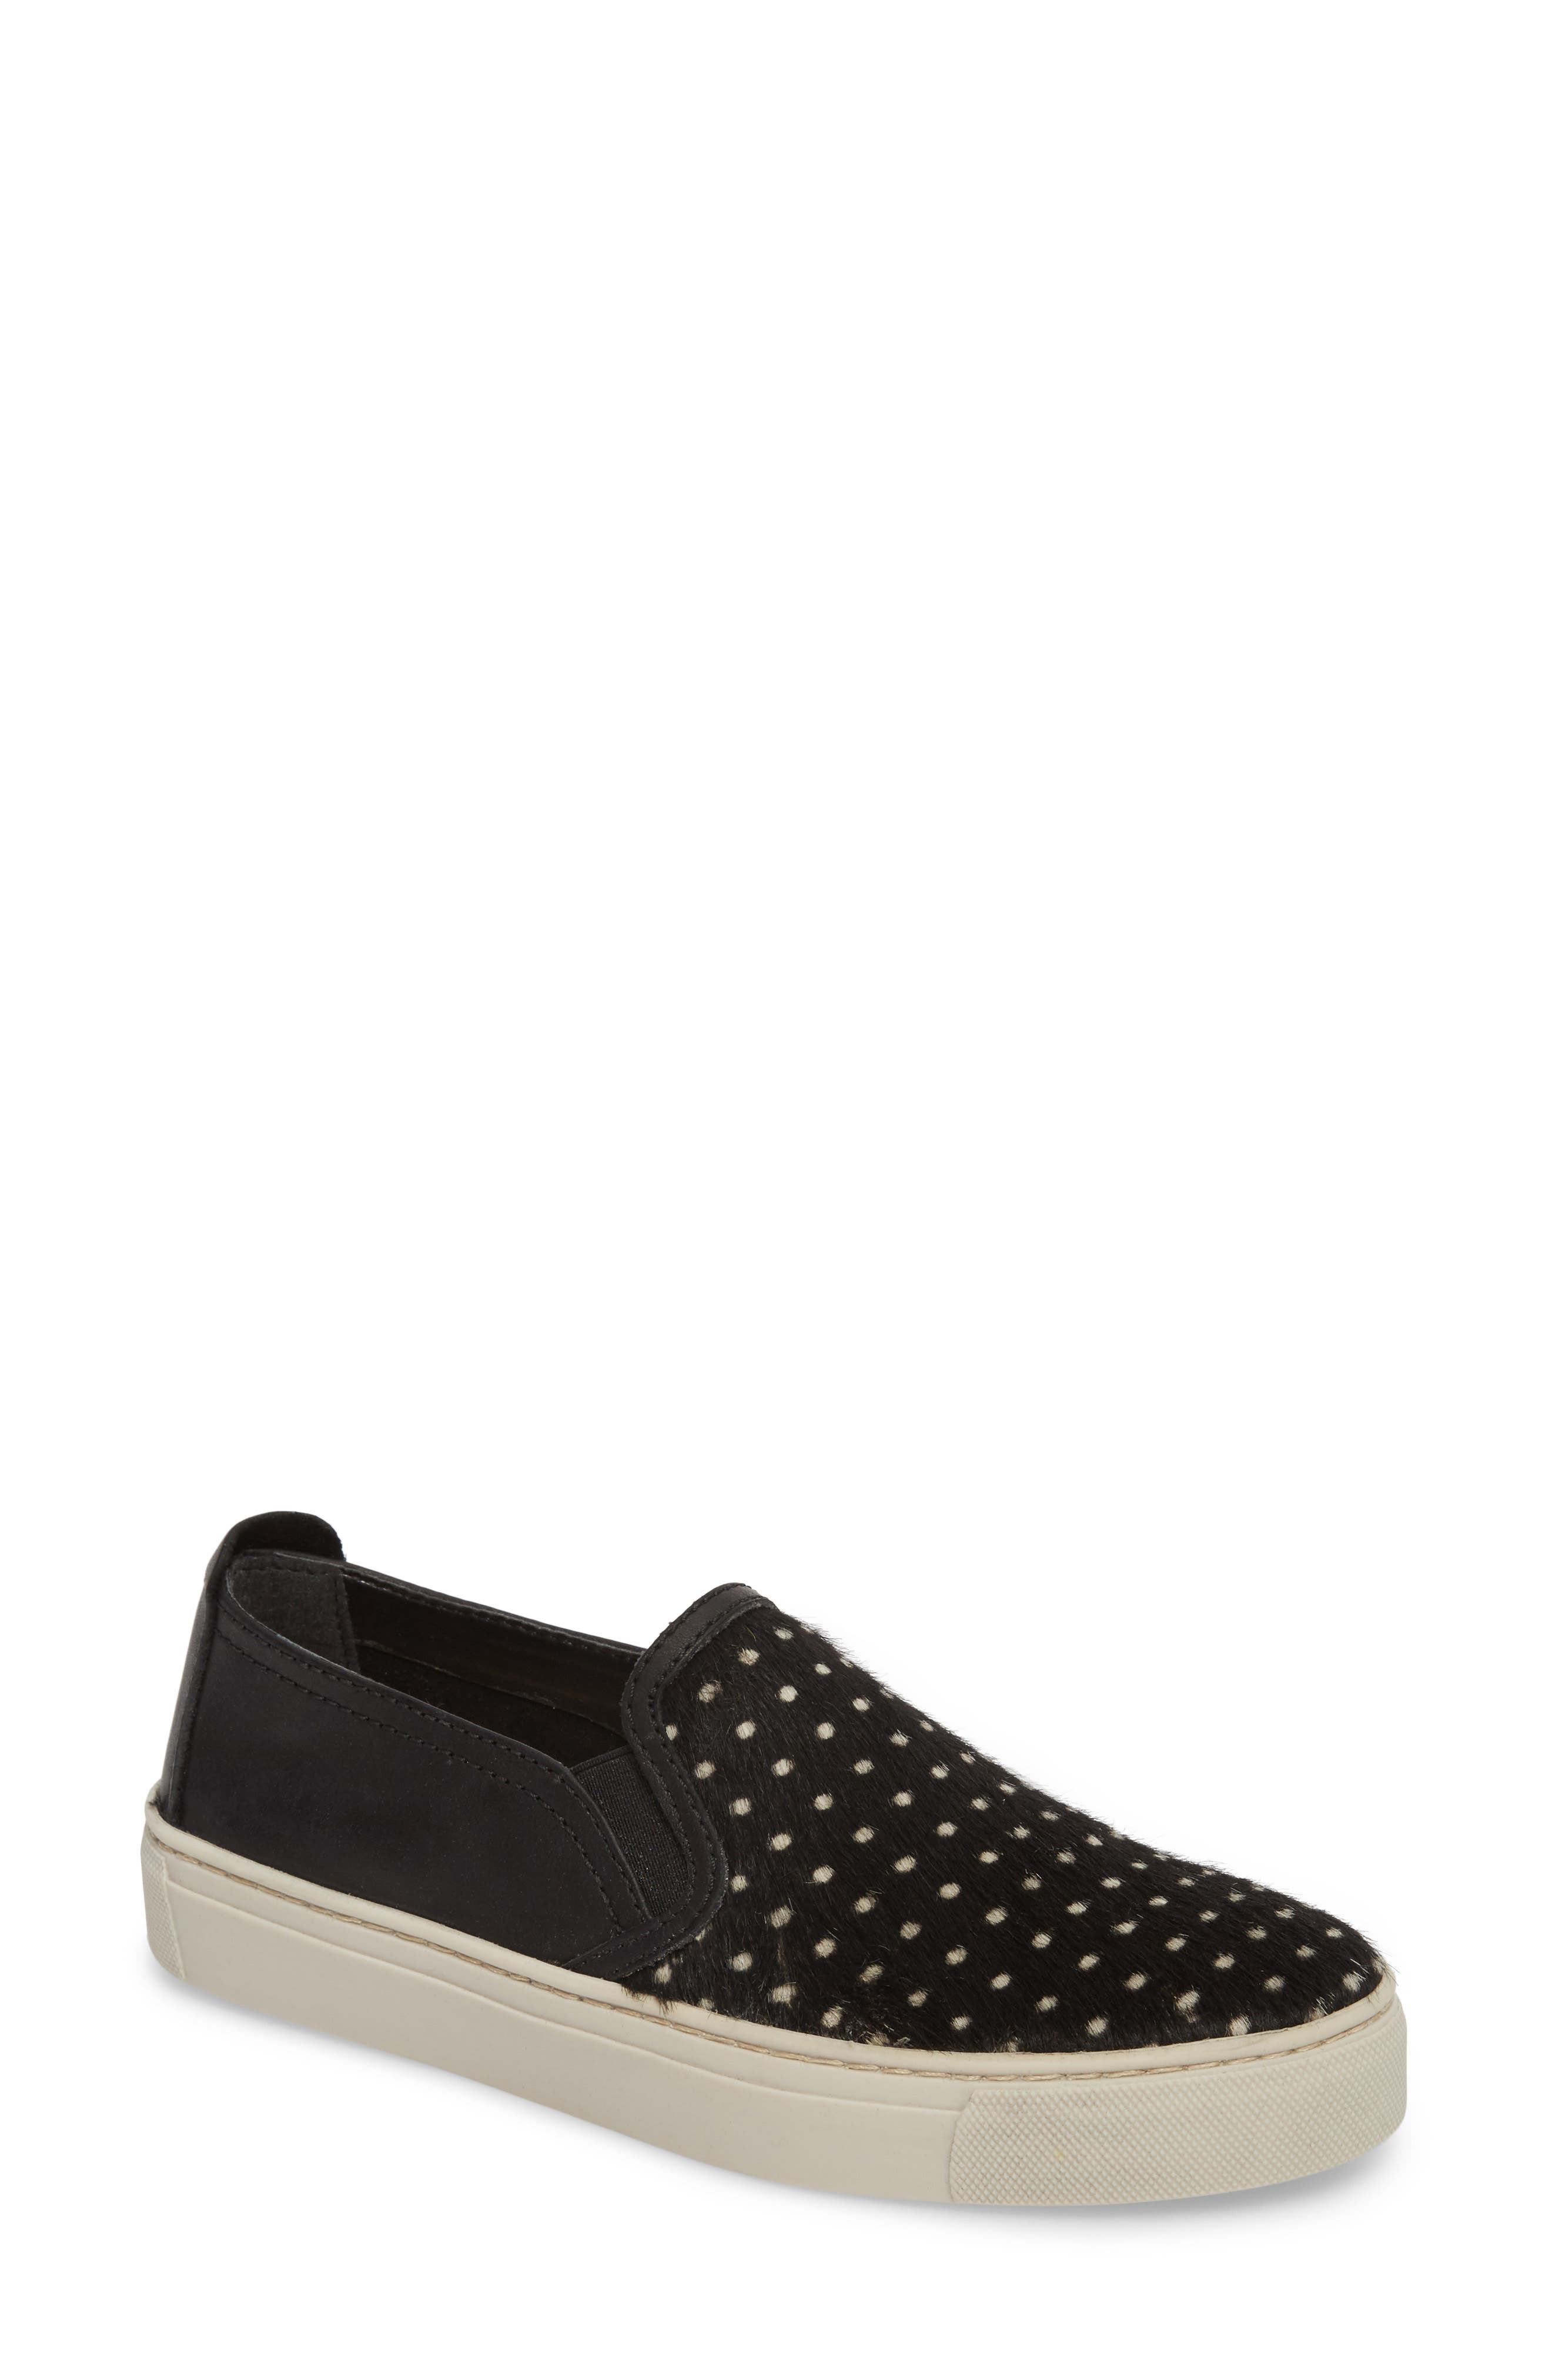 Sneak About Slip-On Sneaker,                         Main,                         color, BLACK POLKA DOT LEATHER